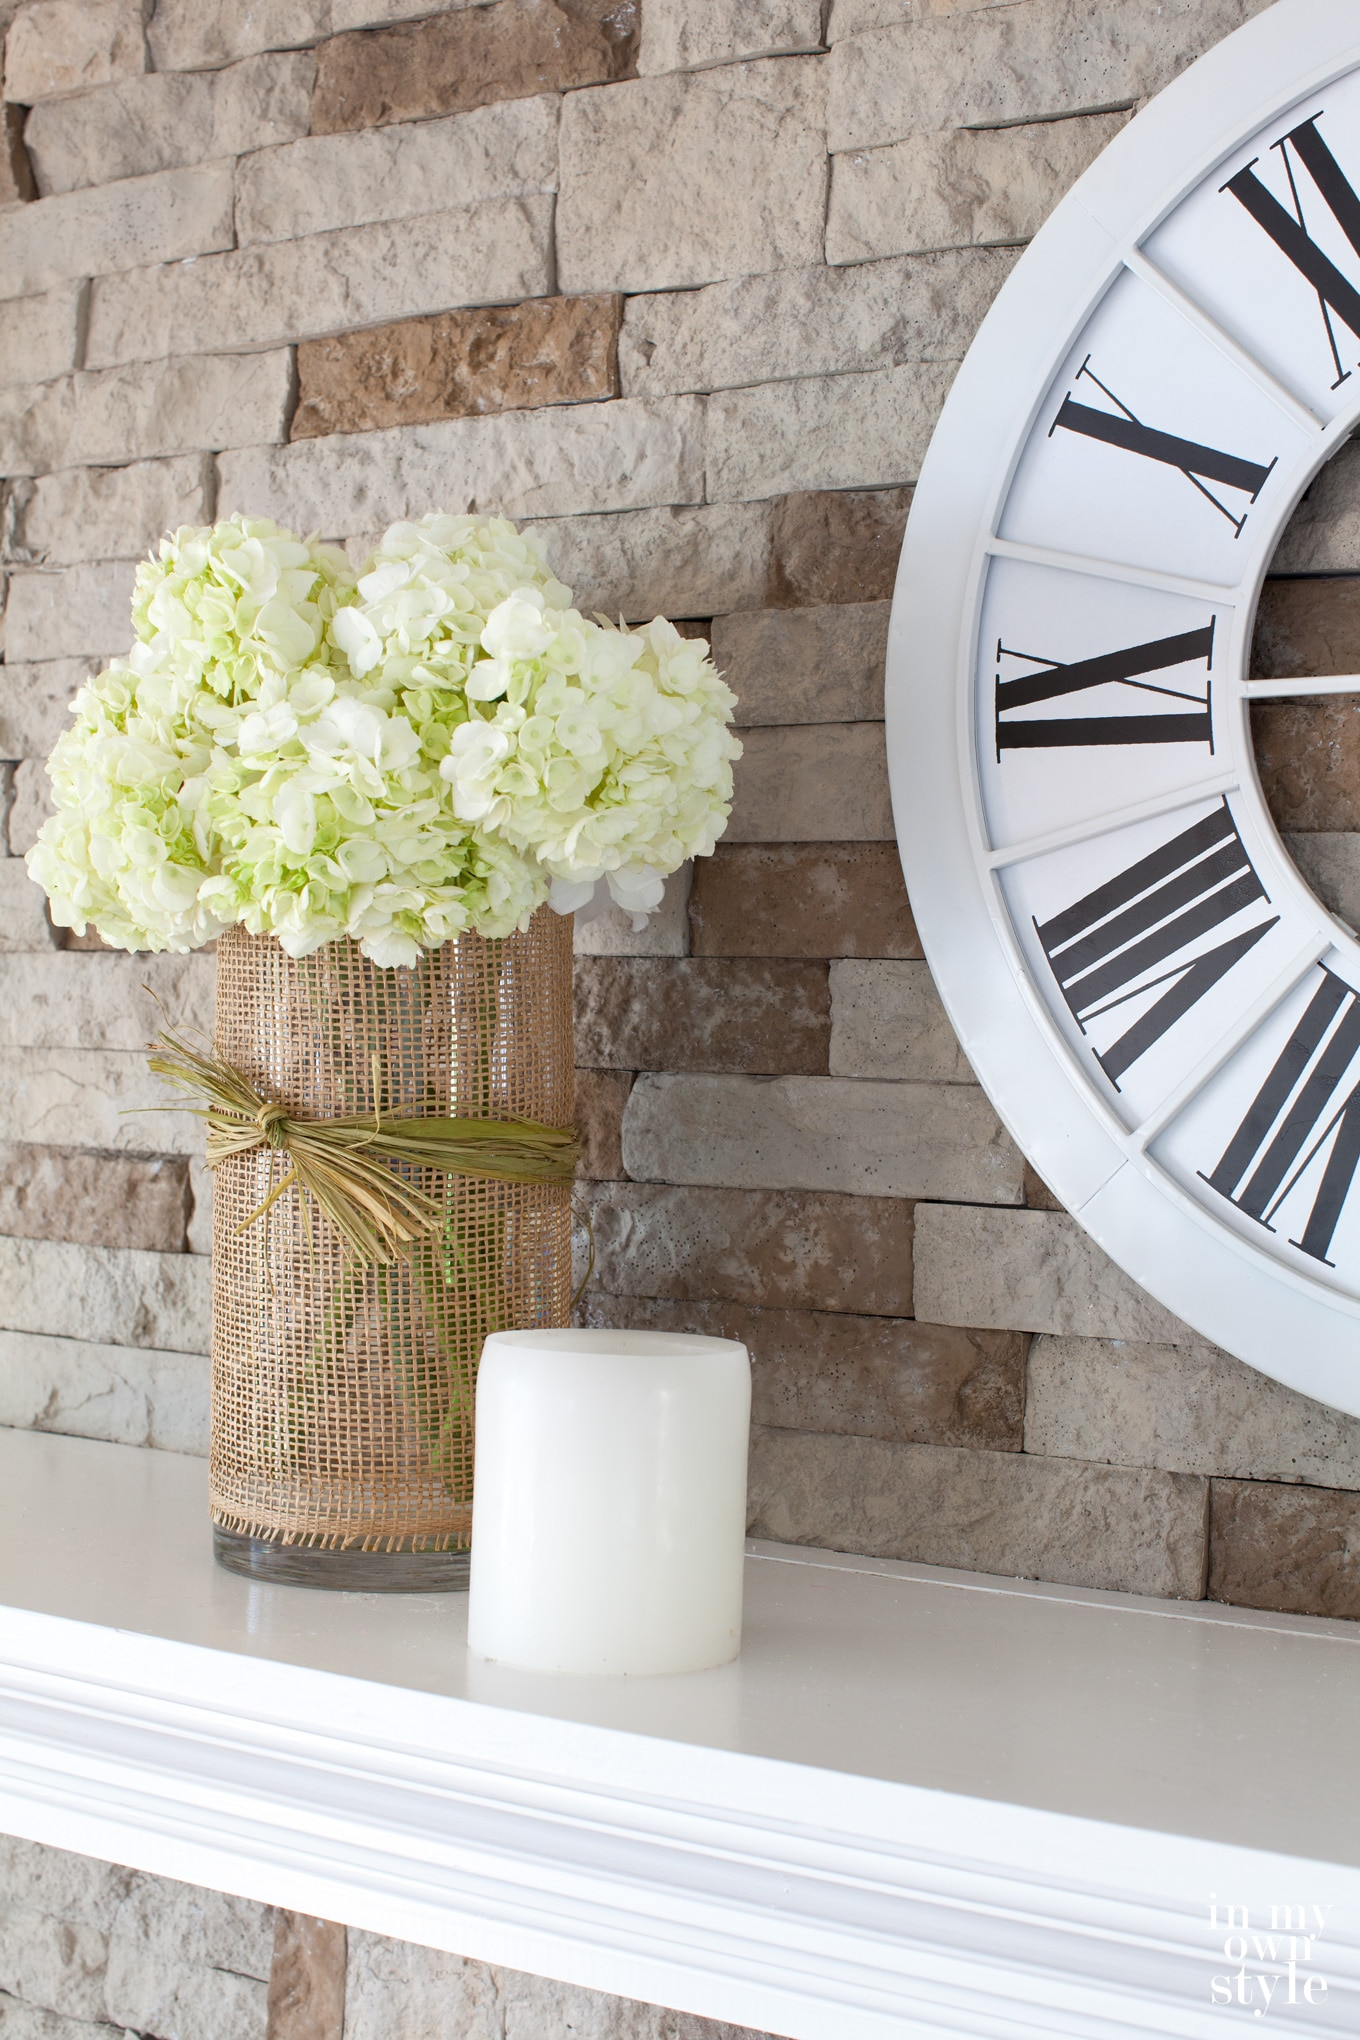 Flower Vase ideas